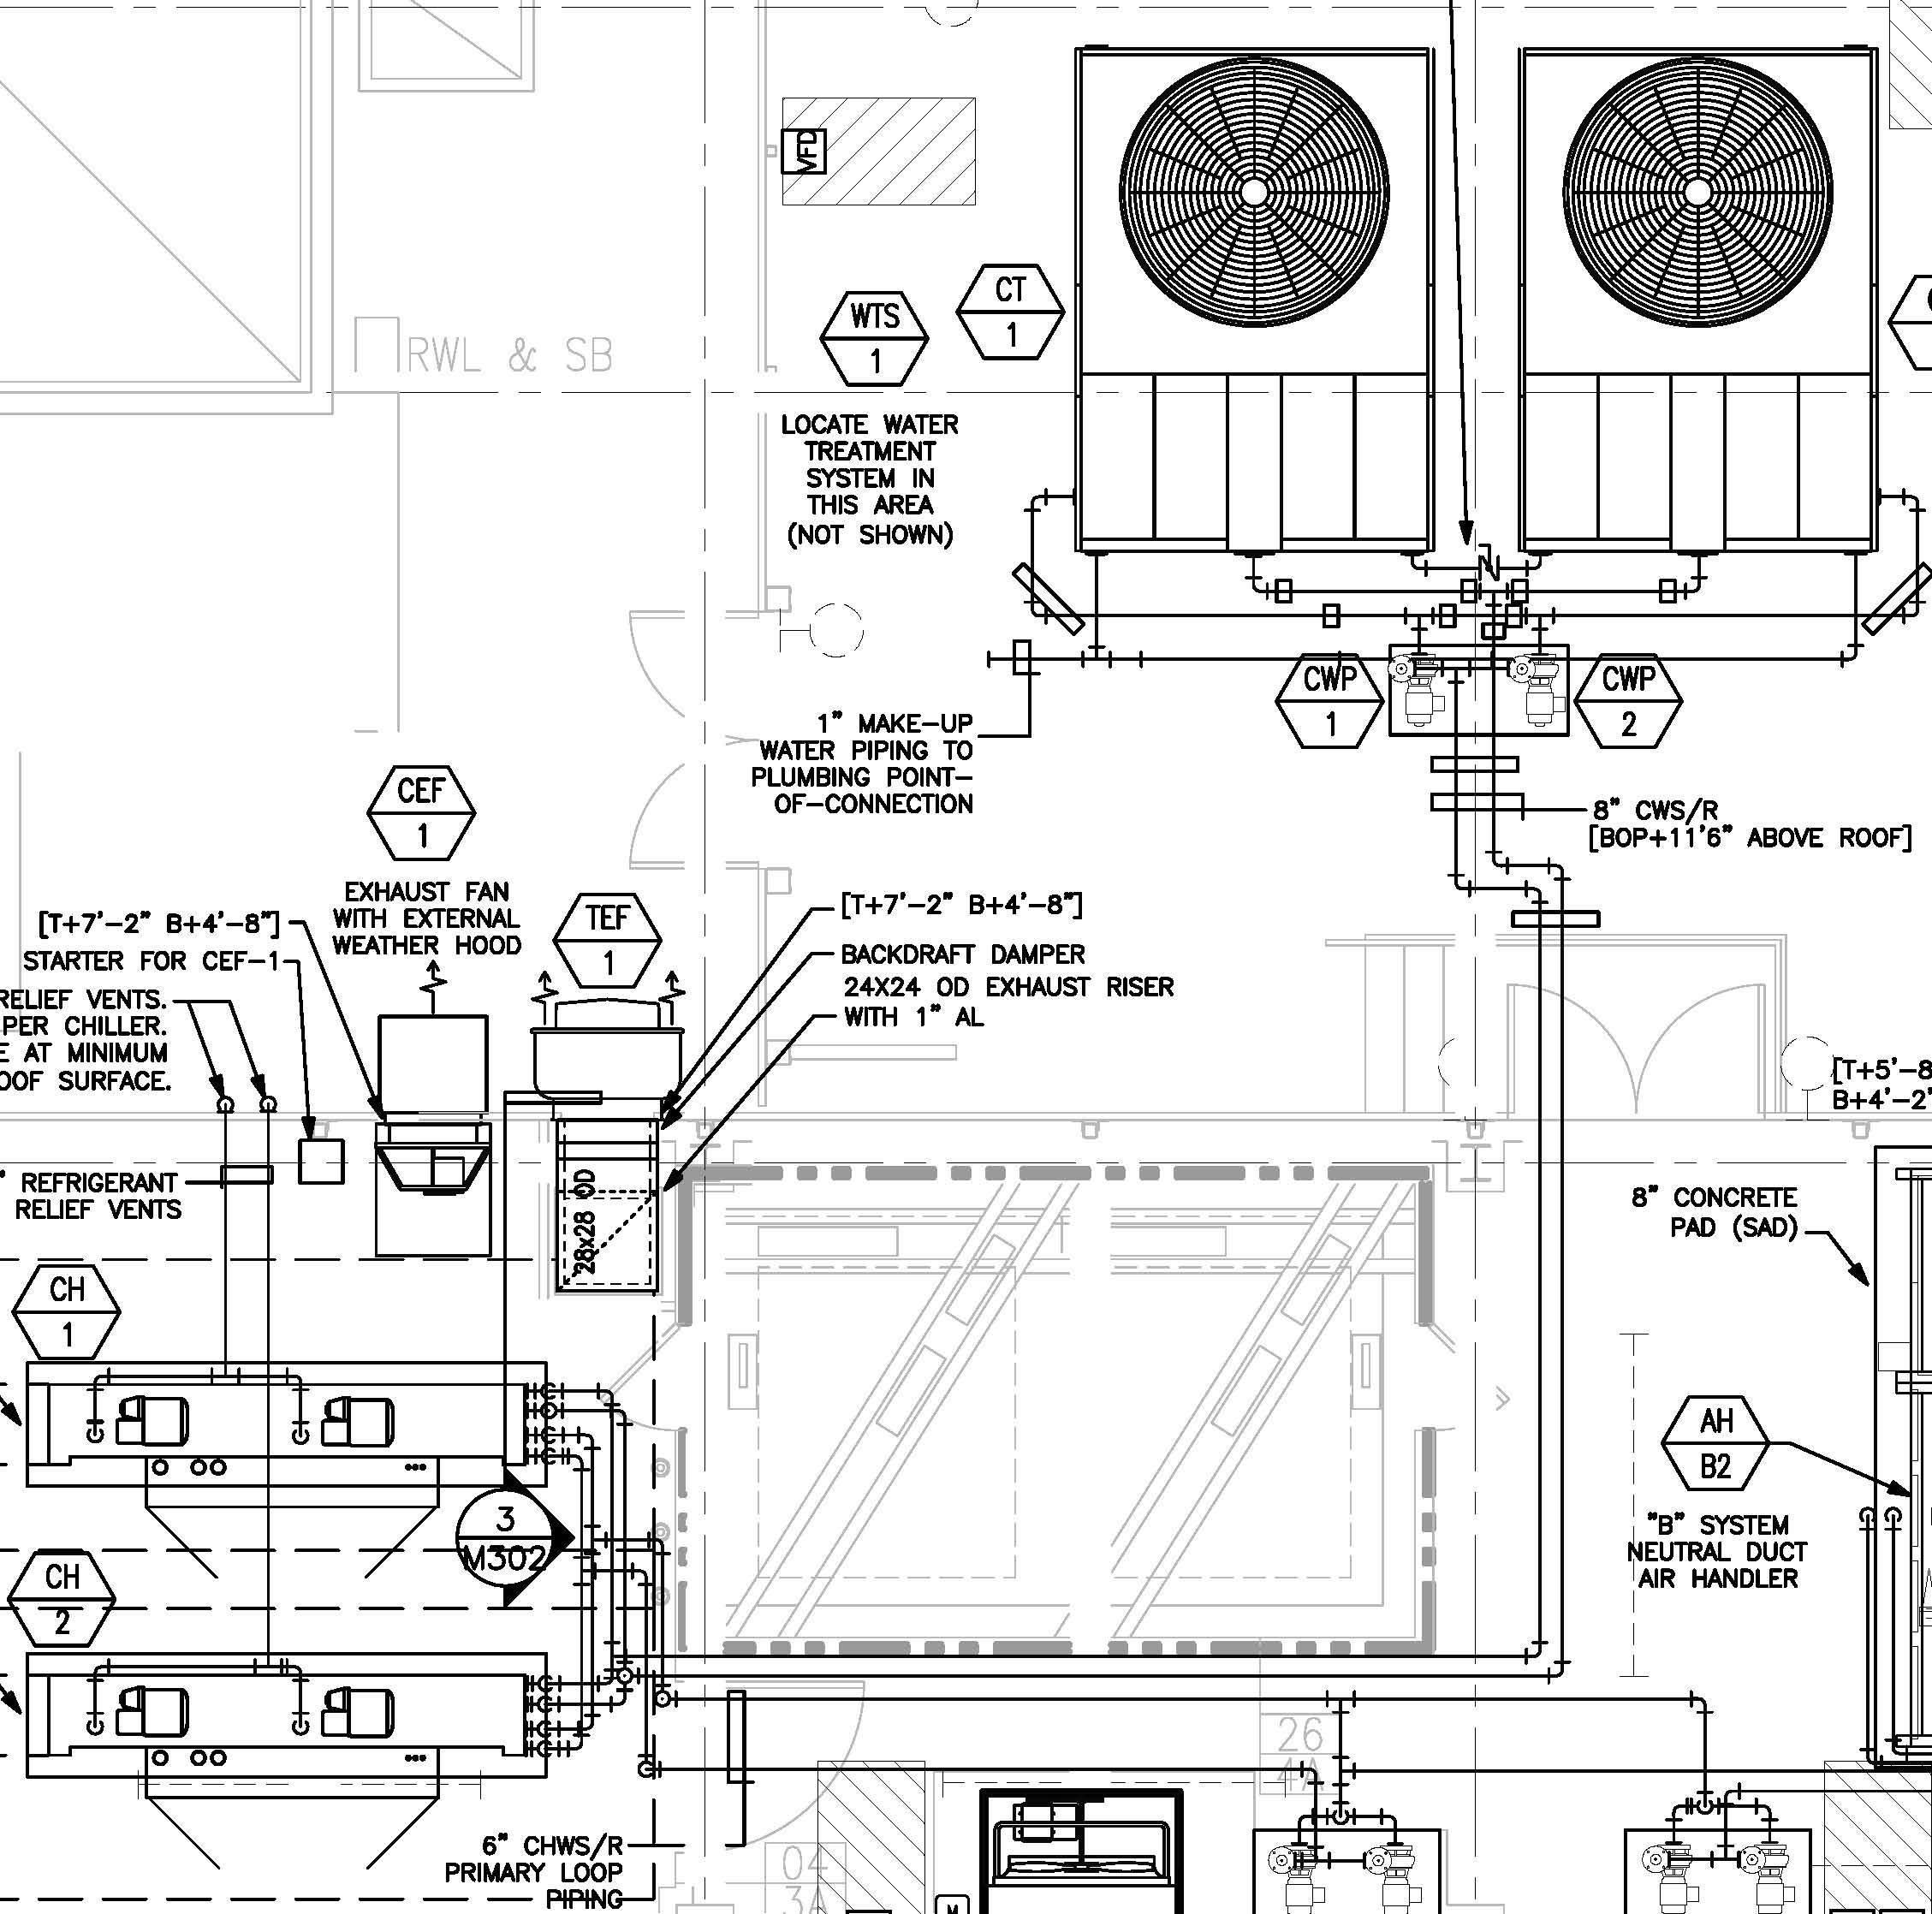 outside ac unit wiring diagram Download-Hvac Condenser Wiring Diagram New Air Conditioning Condensing Unit Wiring Diagram Valid Wiring Diagram 12-h